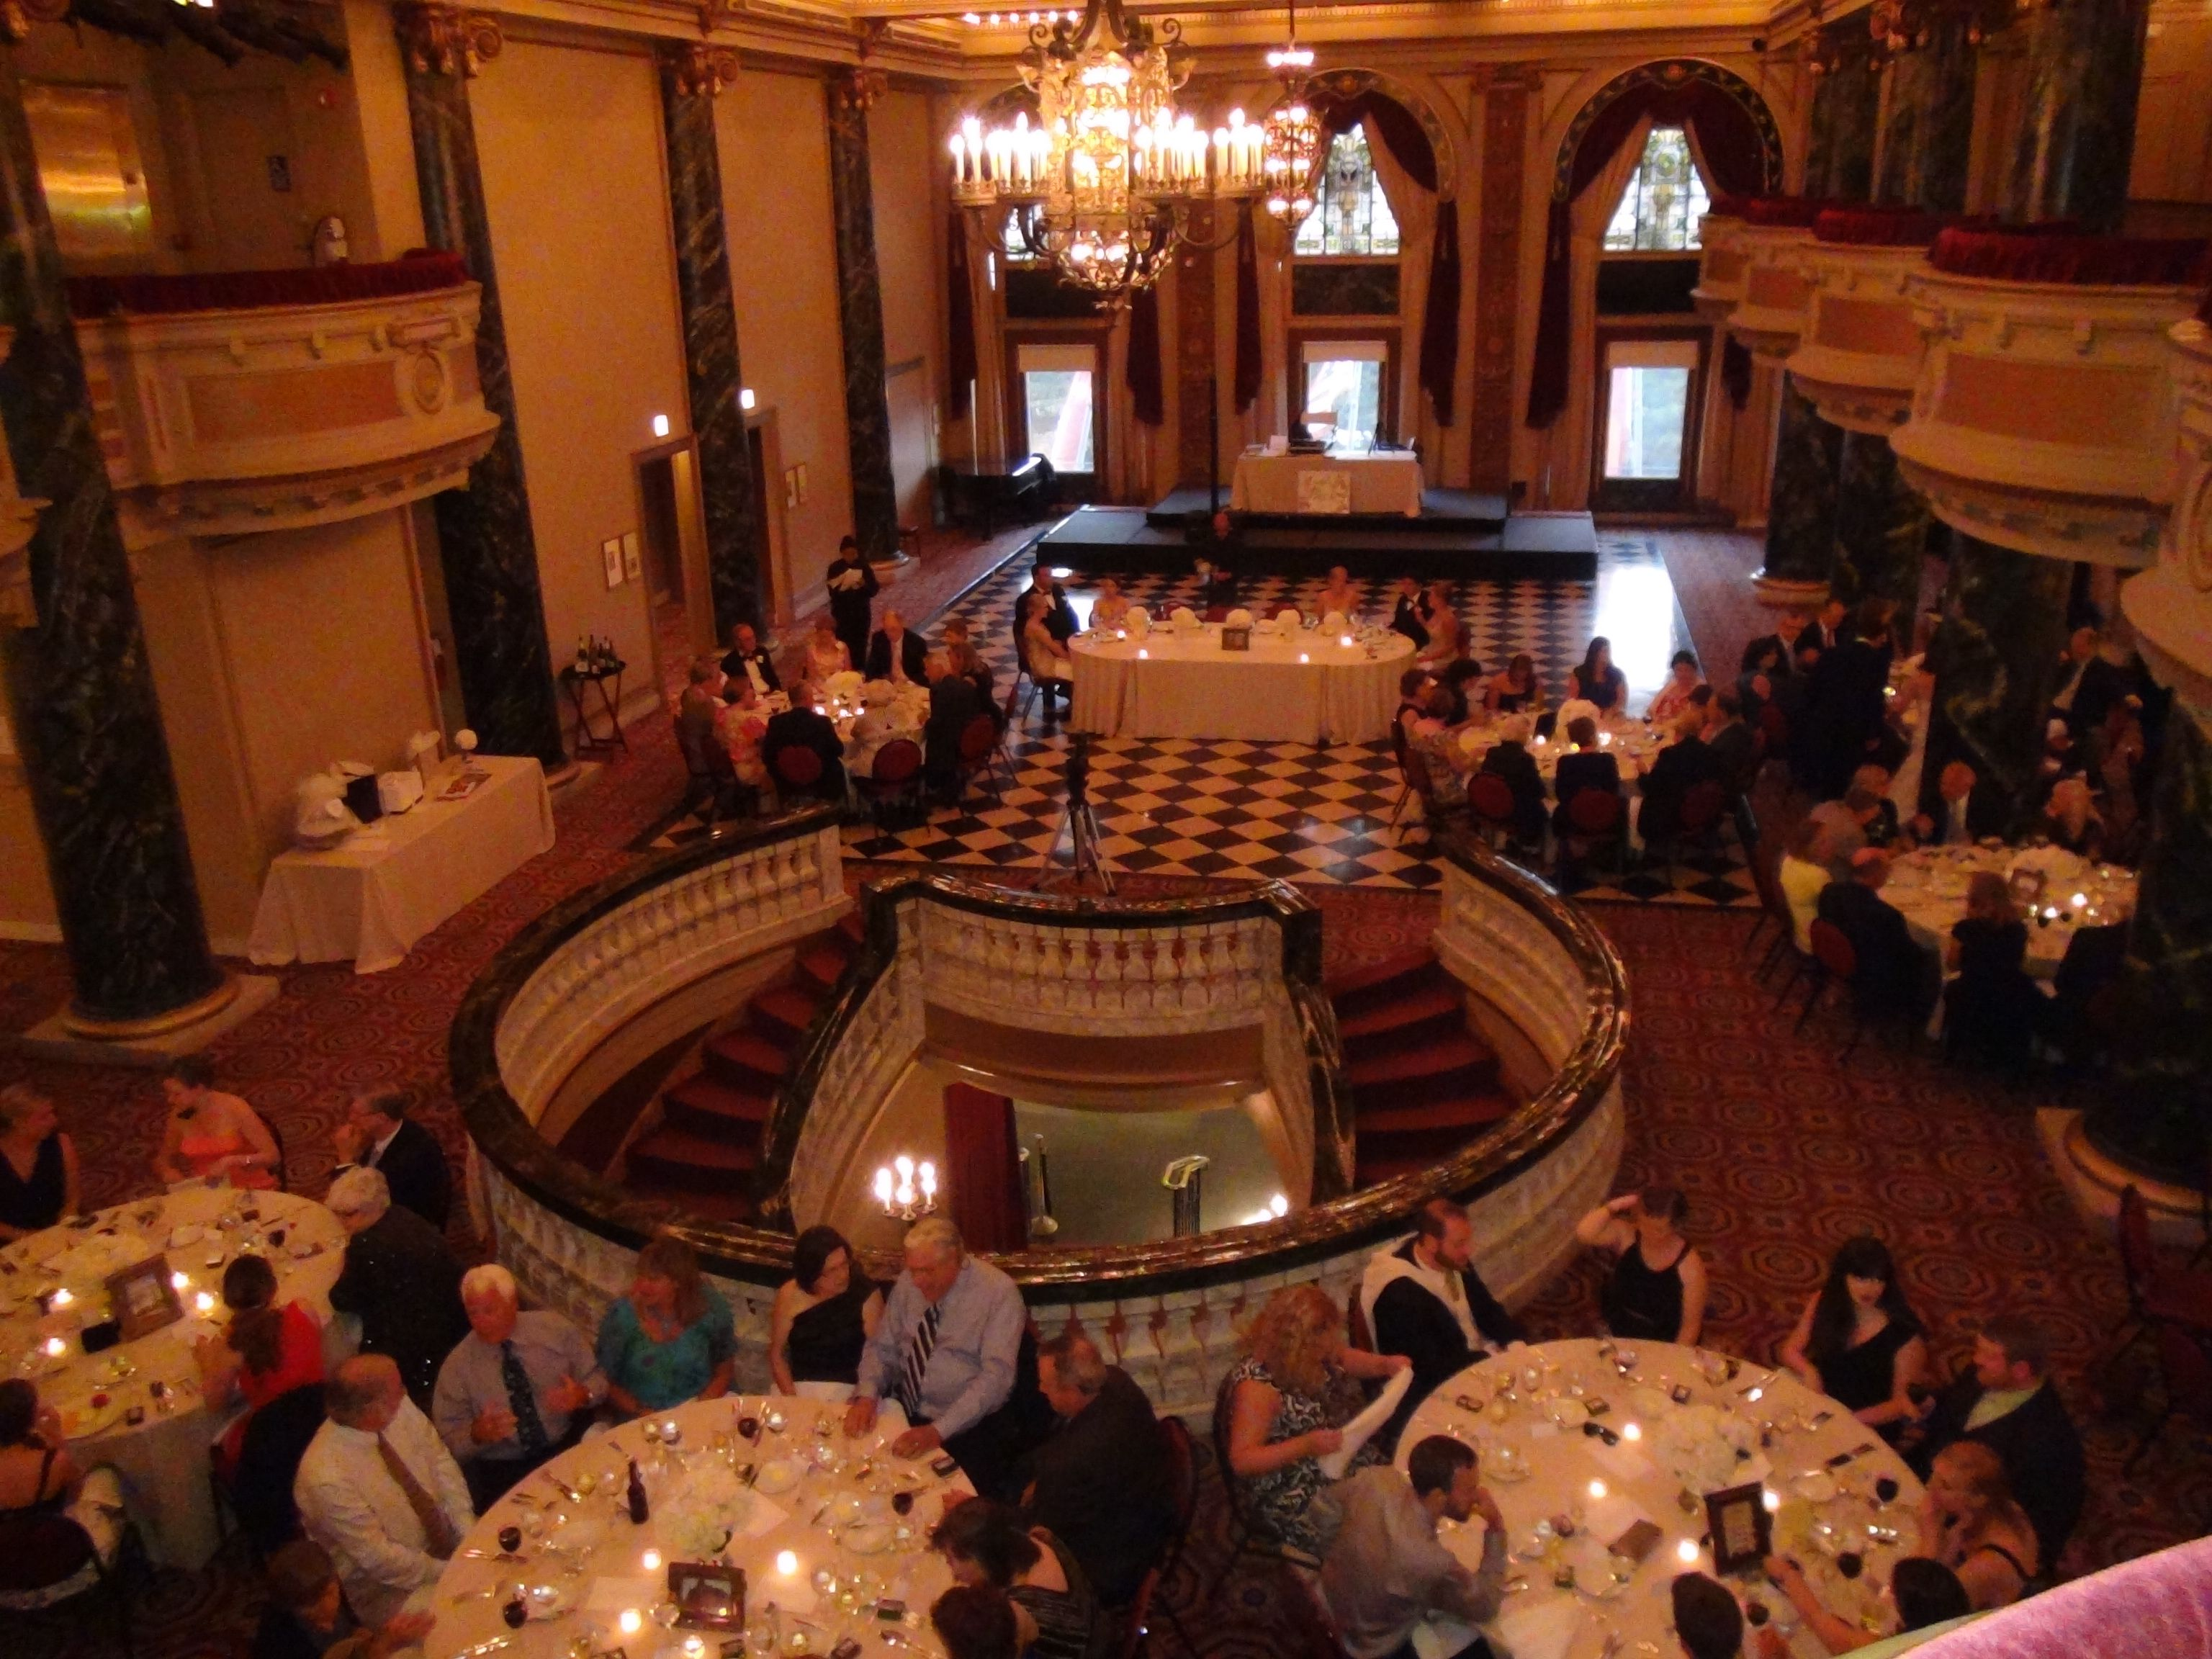 The ballroom at the School of the Art Institute radiates classic 1920's elegance. Add a Chicago Wedding DJ with some classic Big Band music.